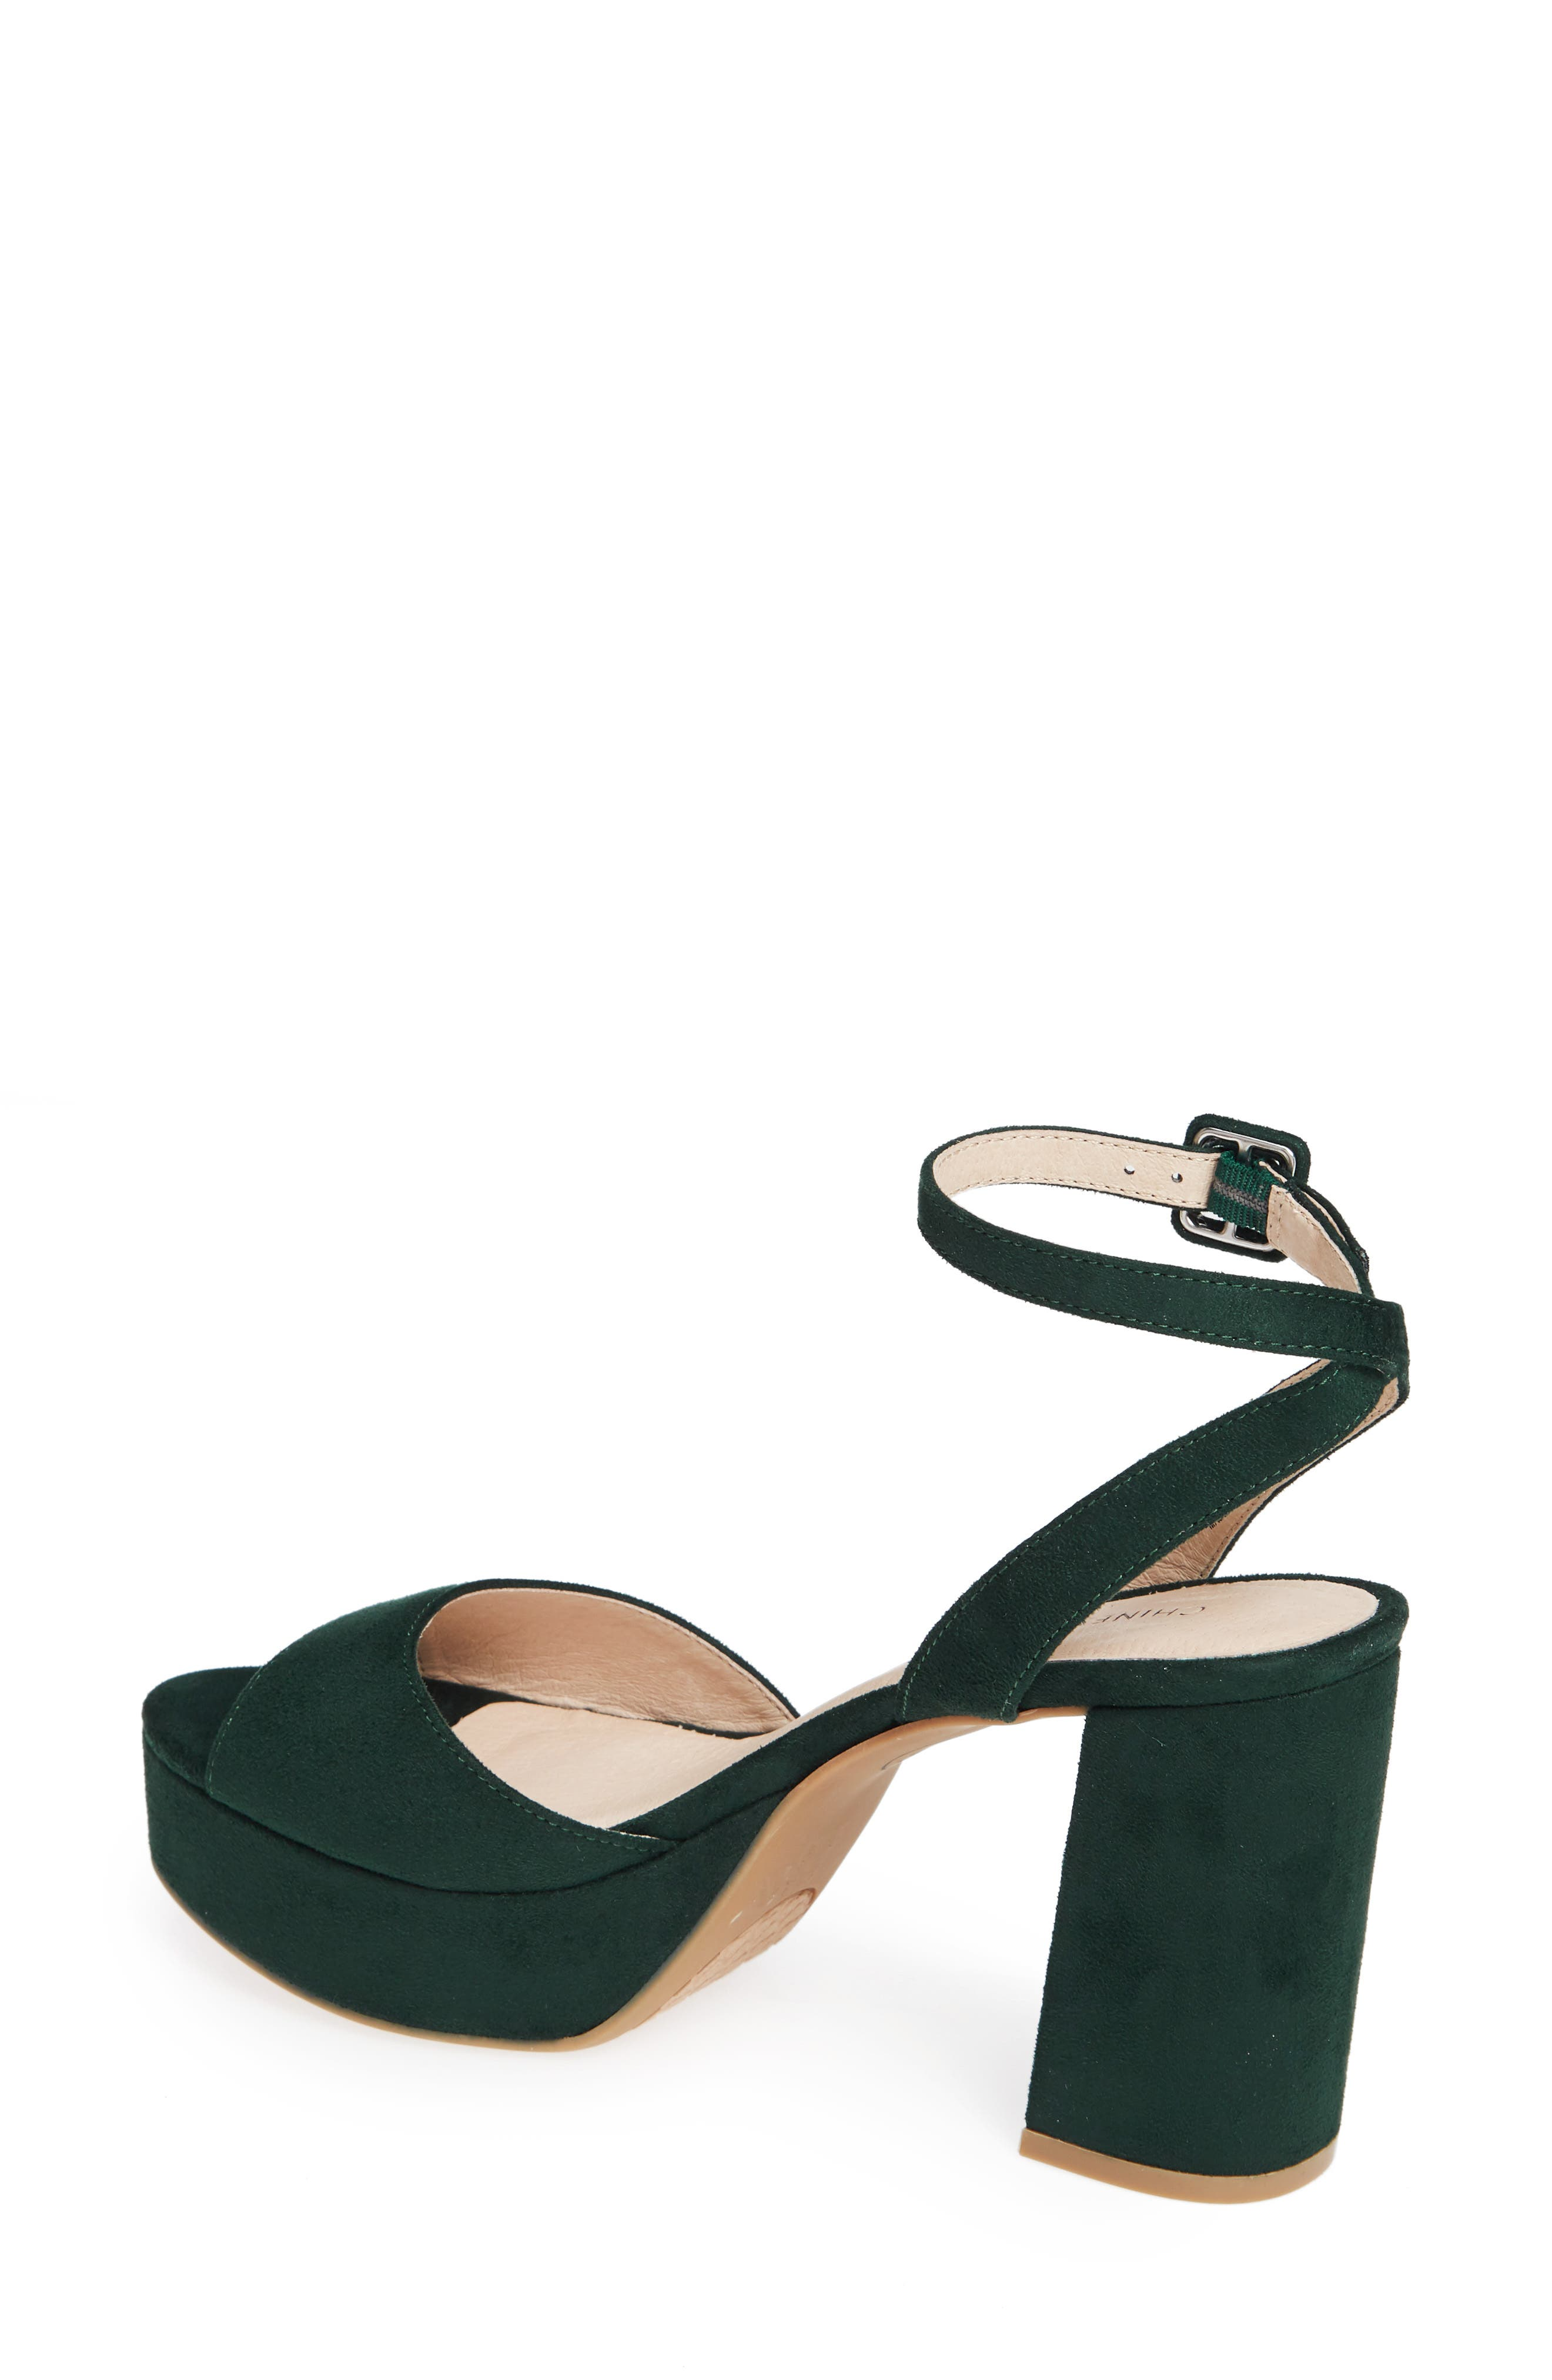 CHINESE LAUNDRY, Theresa Platform Sandal, Alternate thumbnail 2, color, FOREST GREEN SUEDE